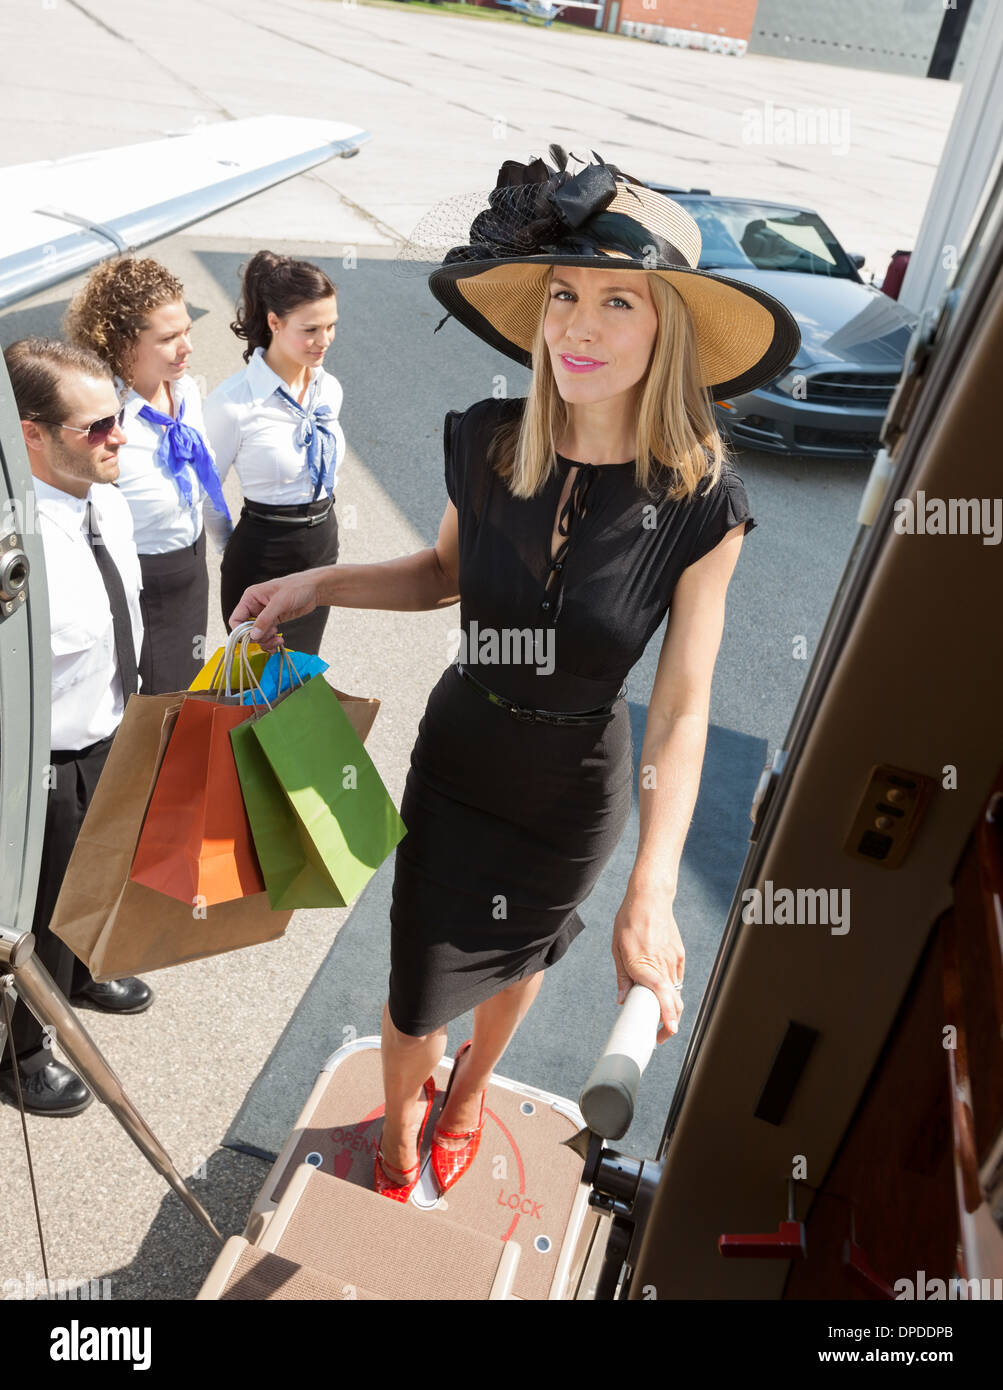 confident-woman-carrying-shopping-bags-w